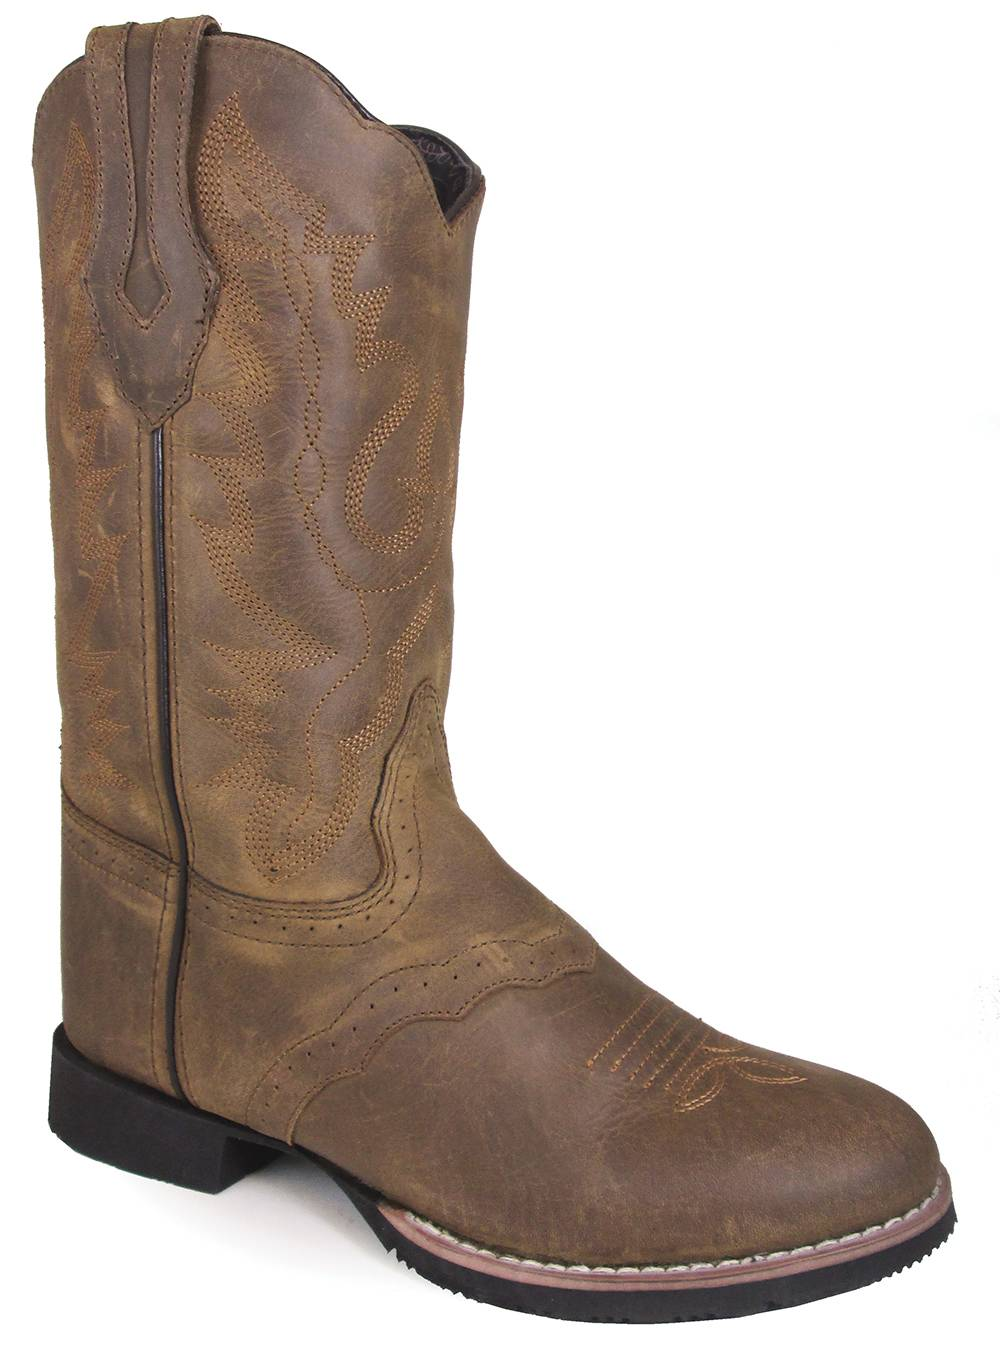 Smoky Mountain Showdown 10'' U Toe Leather Boots - Ladies - Brown Distress